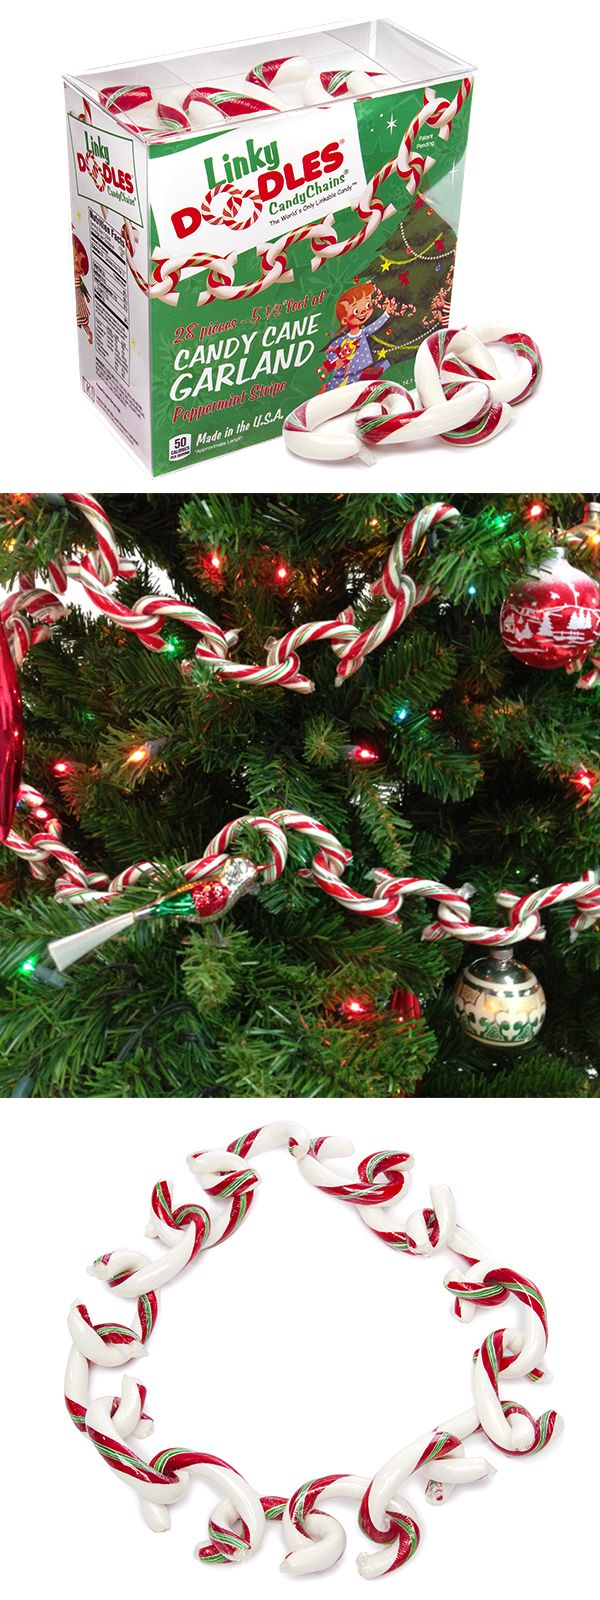 These real candy cane Linky Doodles make for easy DIY family fun. String them around the tree, along the banister, or over the fireplace mantel for a new twist on a classic treat. Each link is individually vacuum sealed to keep the peppermint flavor fresh and yummy. http://www.candywarehouse.com/store/sale/products/christmas-linky-doodles-candy-chains-28-piece-box/?F_All=Y